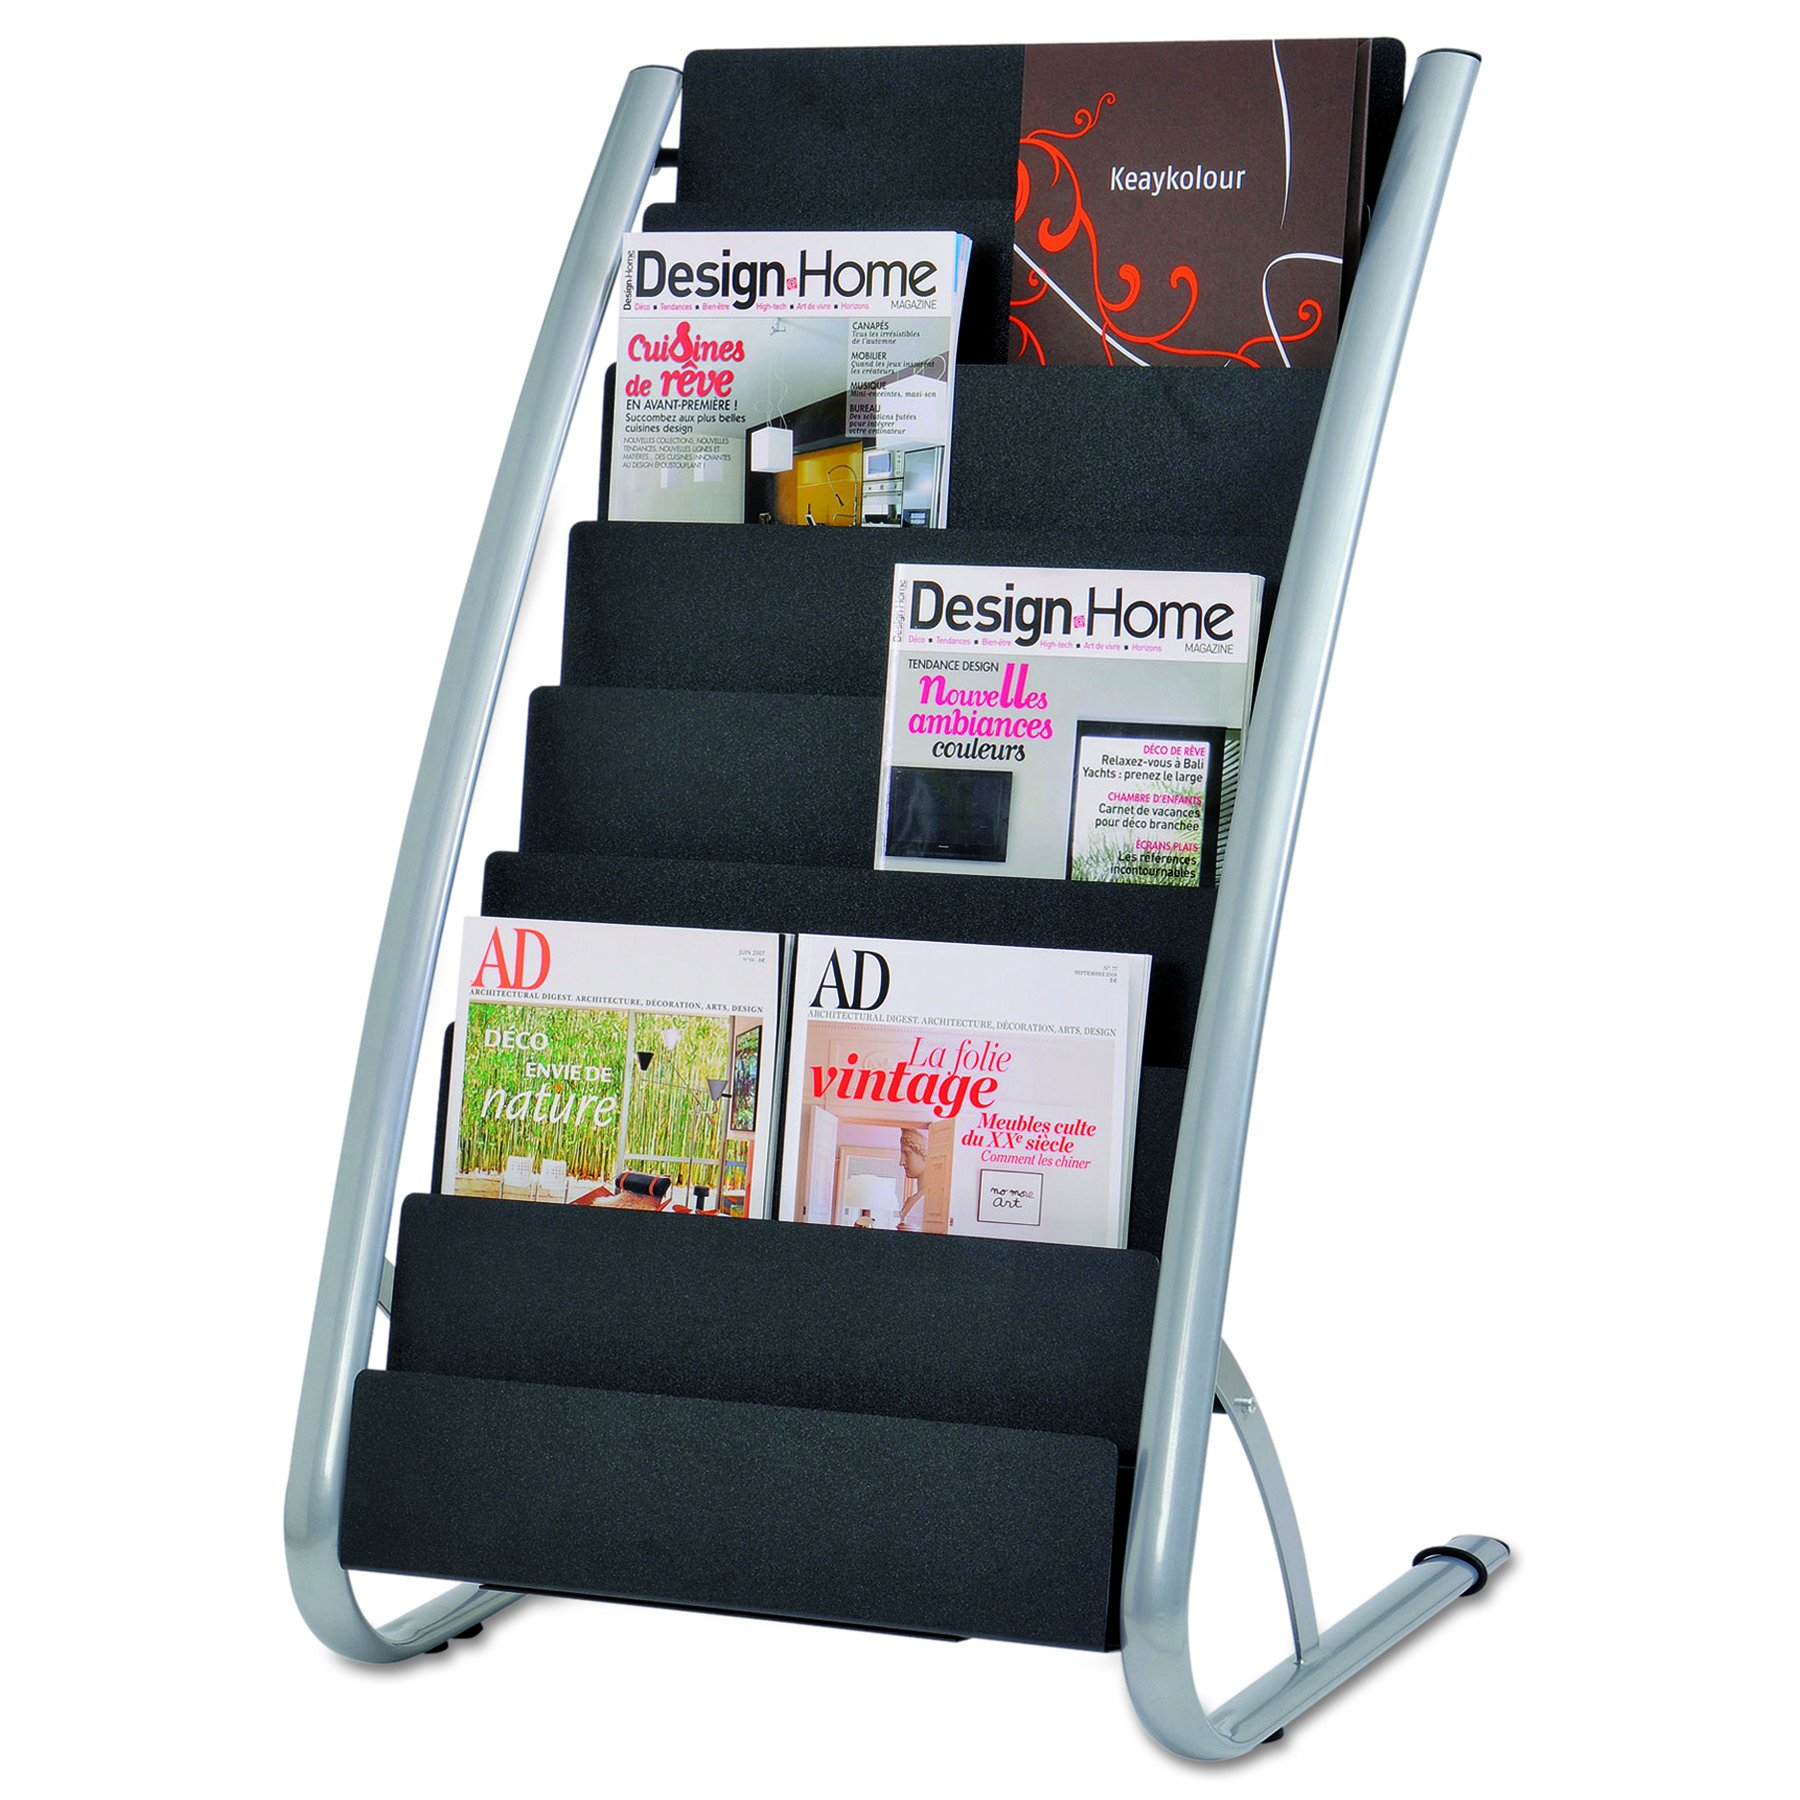 Alba DDEXPO8 Literature Floor Display Rack, Eight Pocket, 22.2w x 18.4d x 36h, Black/Steel (ABADDEXPO8) by Alba